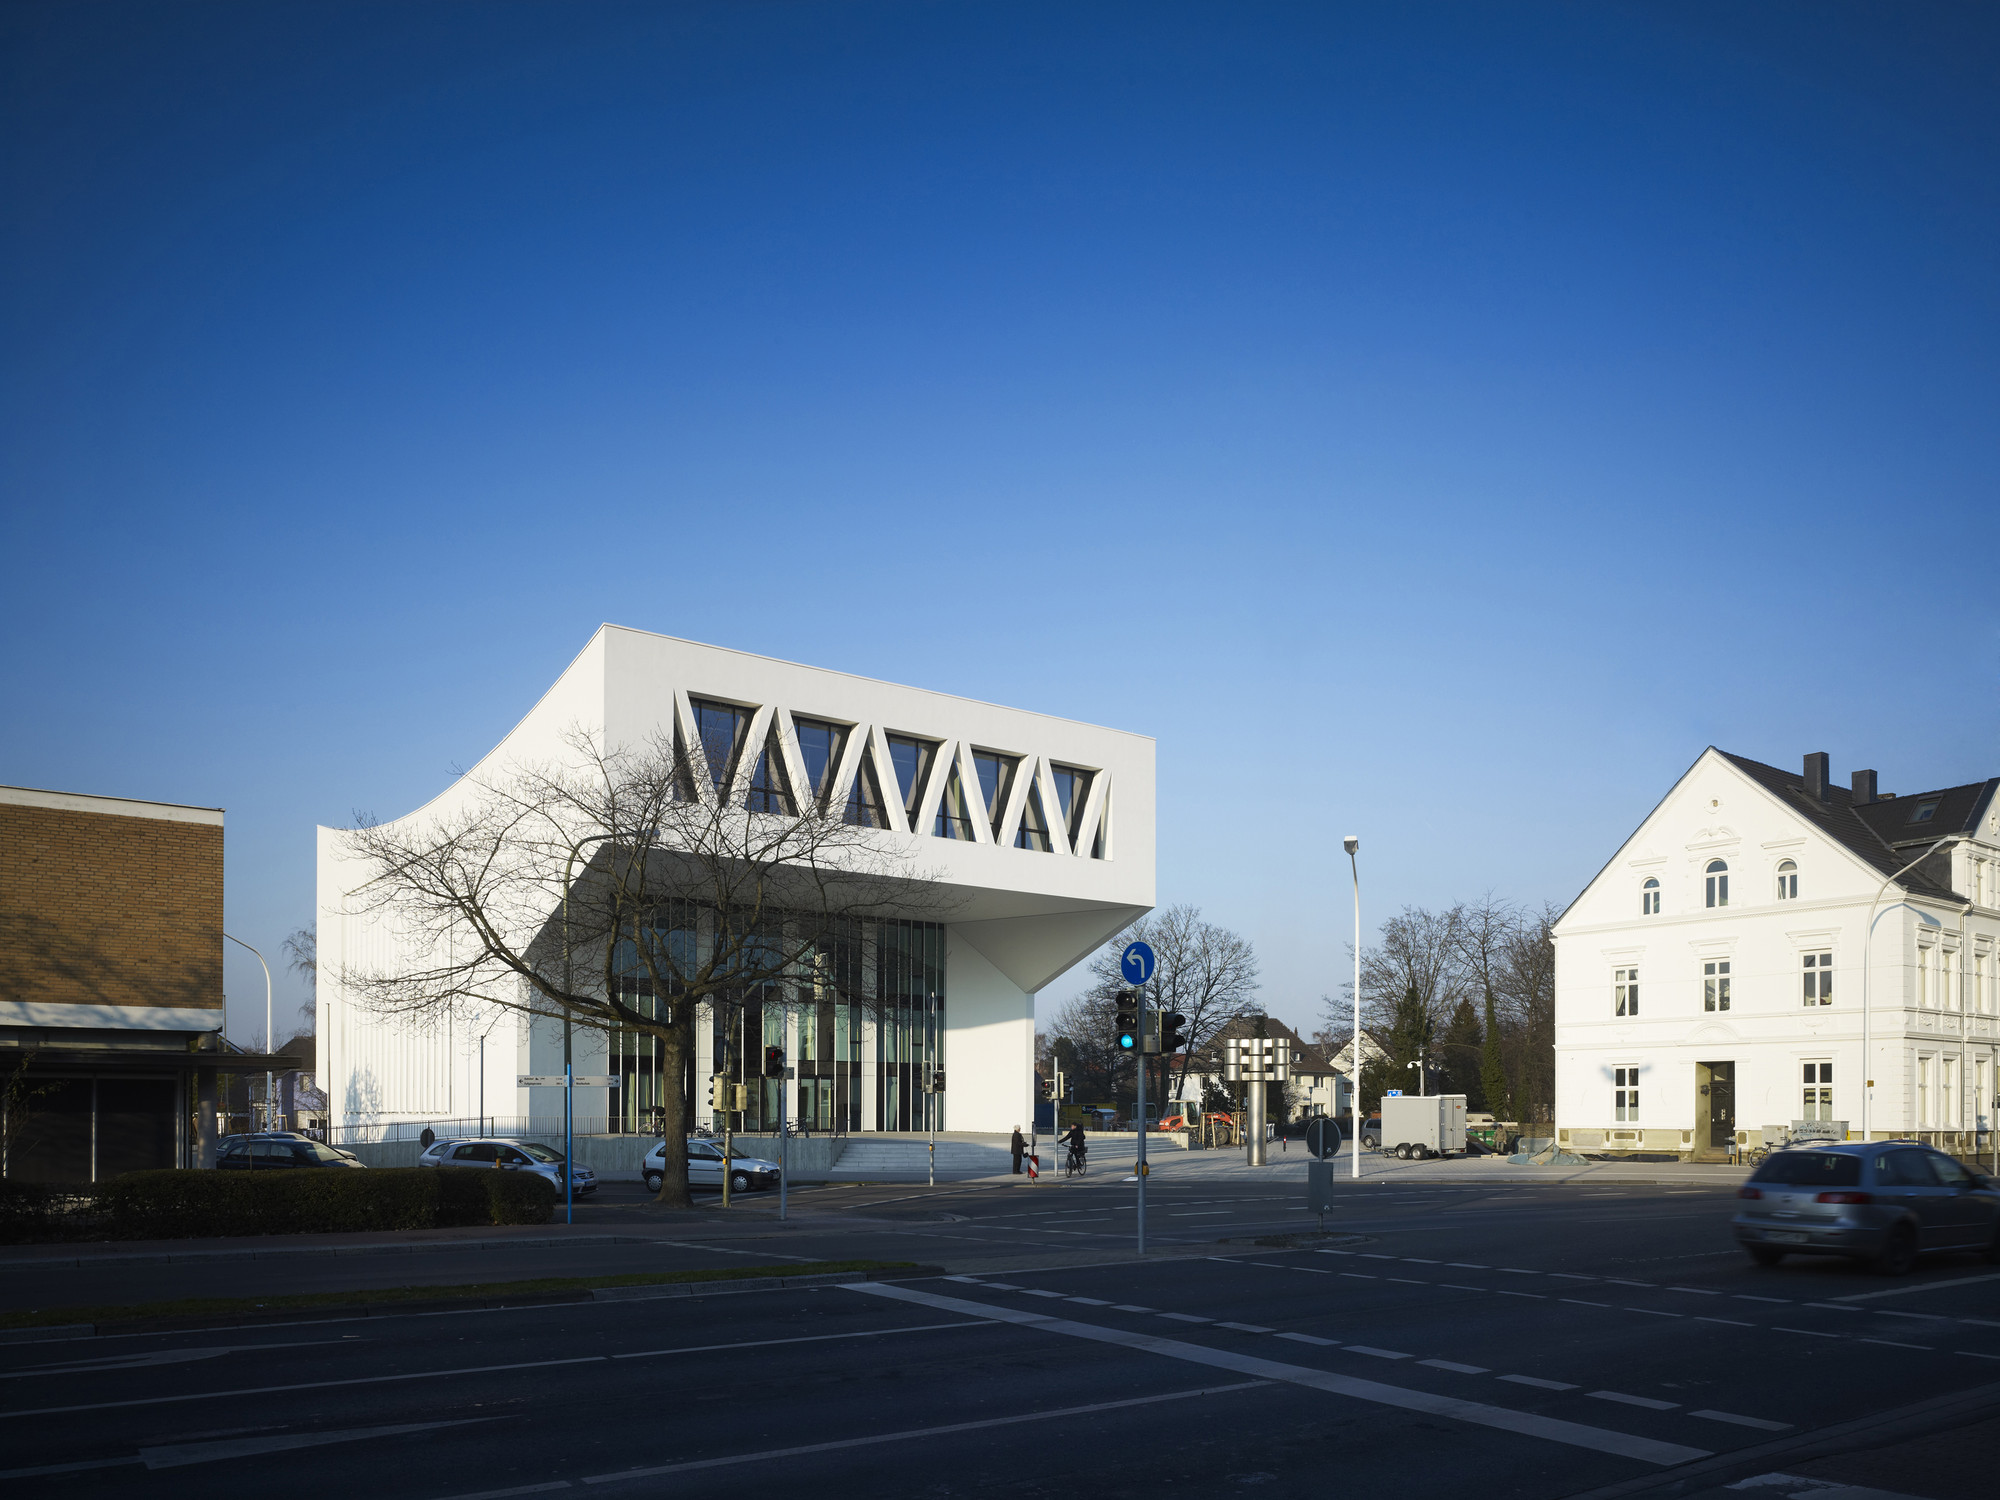 Public Music School / Wulf Architekten, Courtesy of Wulf Architekten